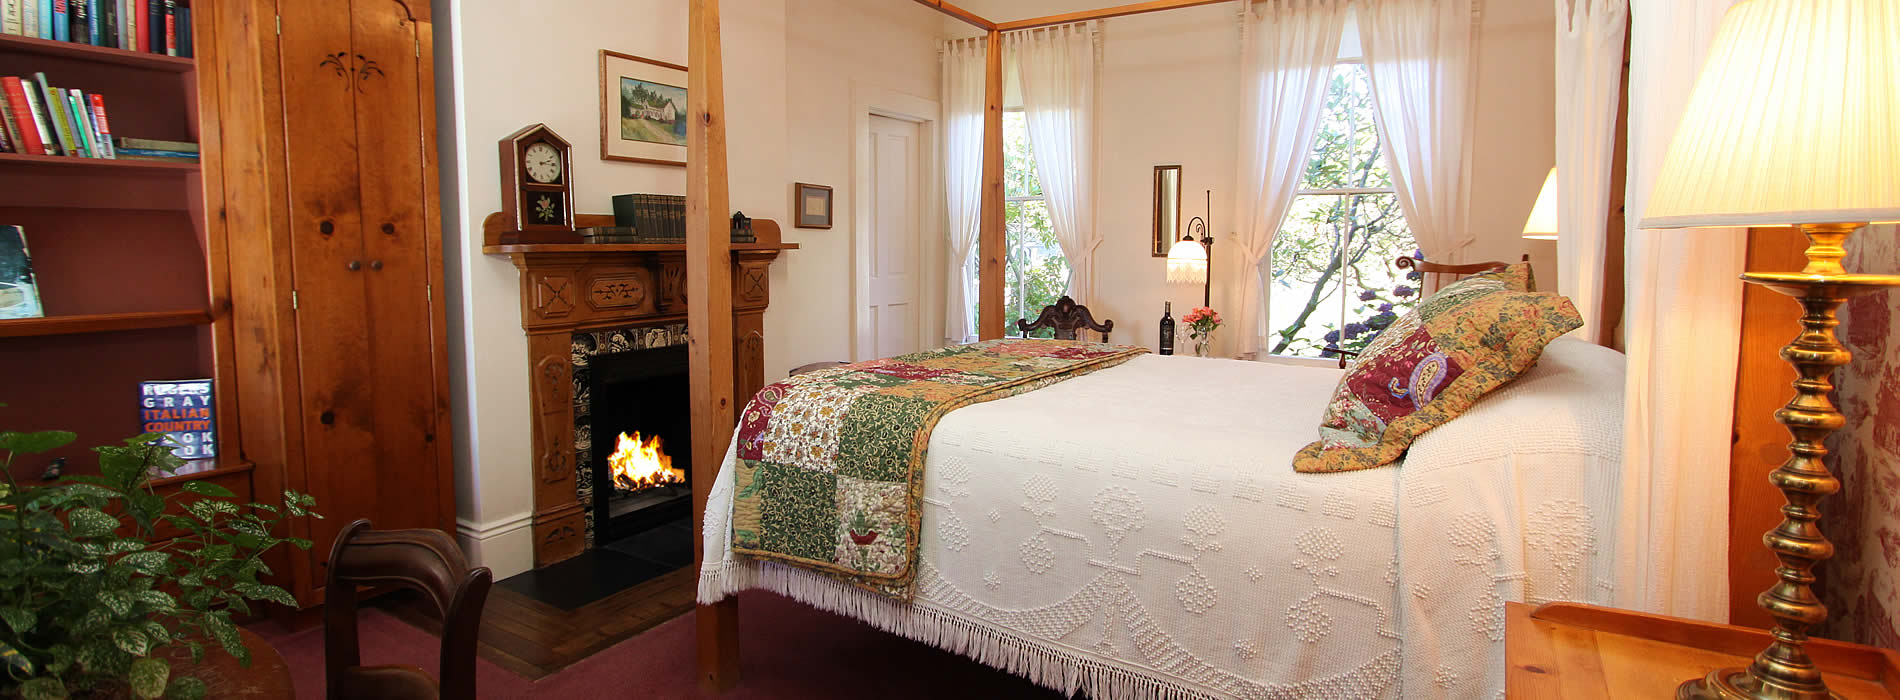 mendocino bed and breakfast inn lodging